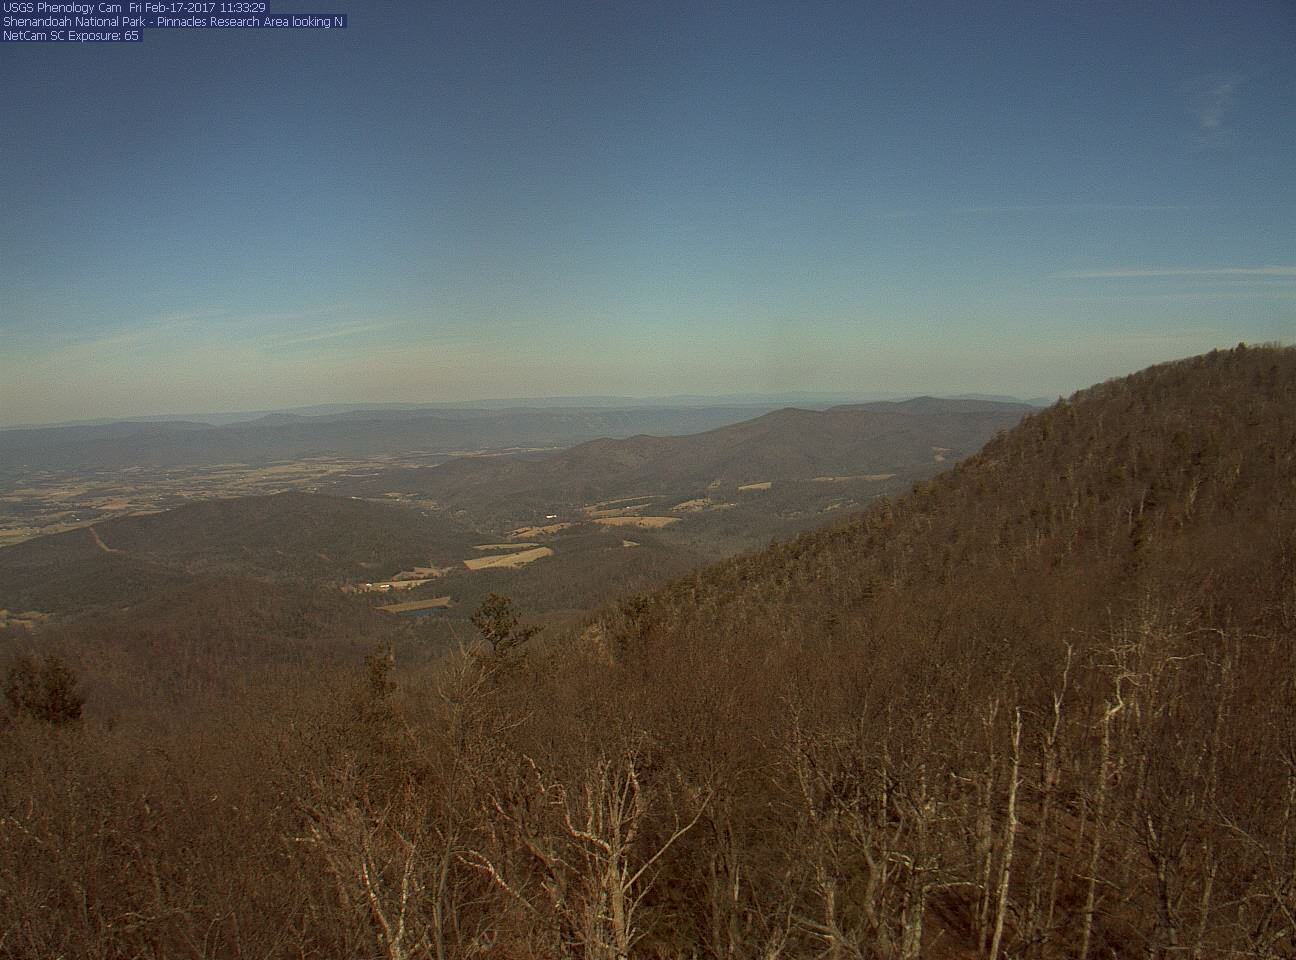 View of a portion of the Shenandoah Valley area at the Pinnacles Research site.